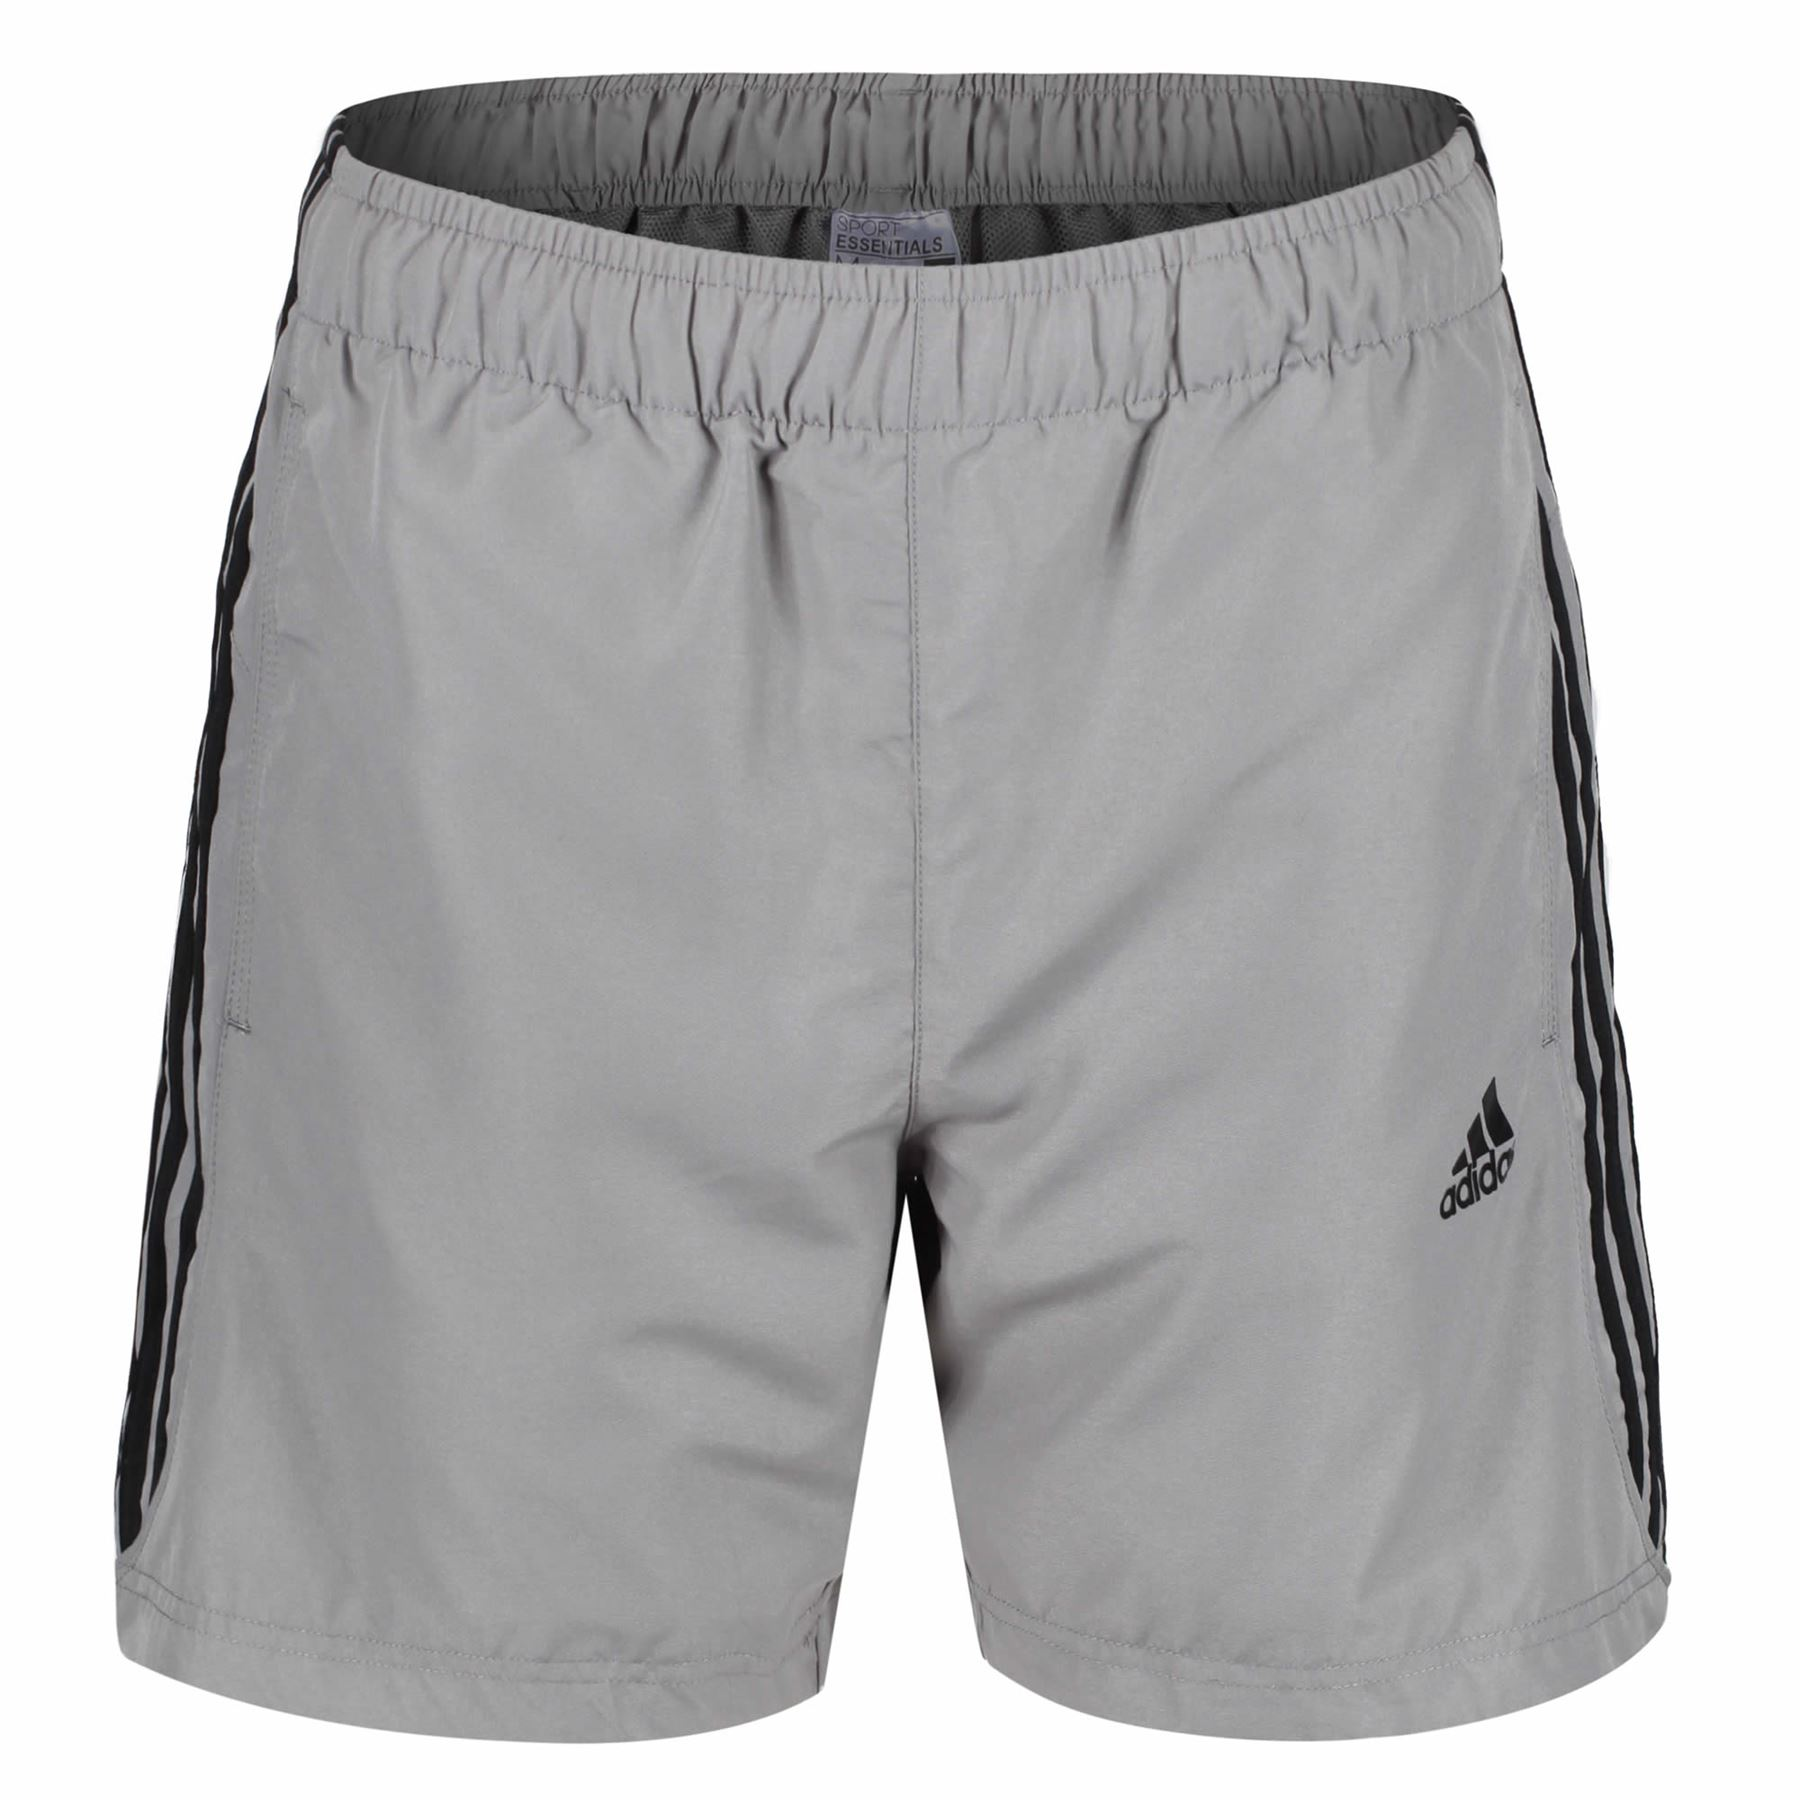 Adidas Essential 3 Stripe Shorts Mens Original Climalite Gym Shorts